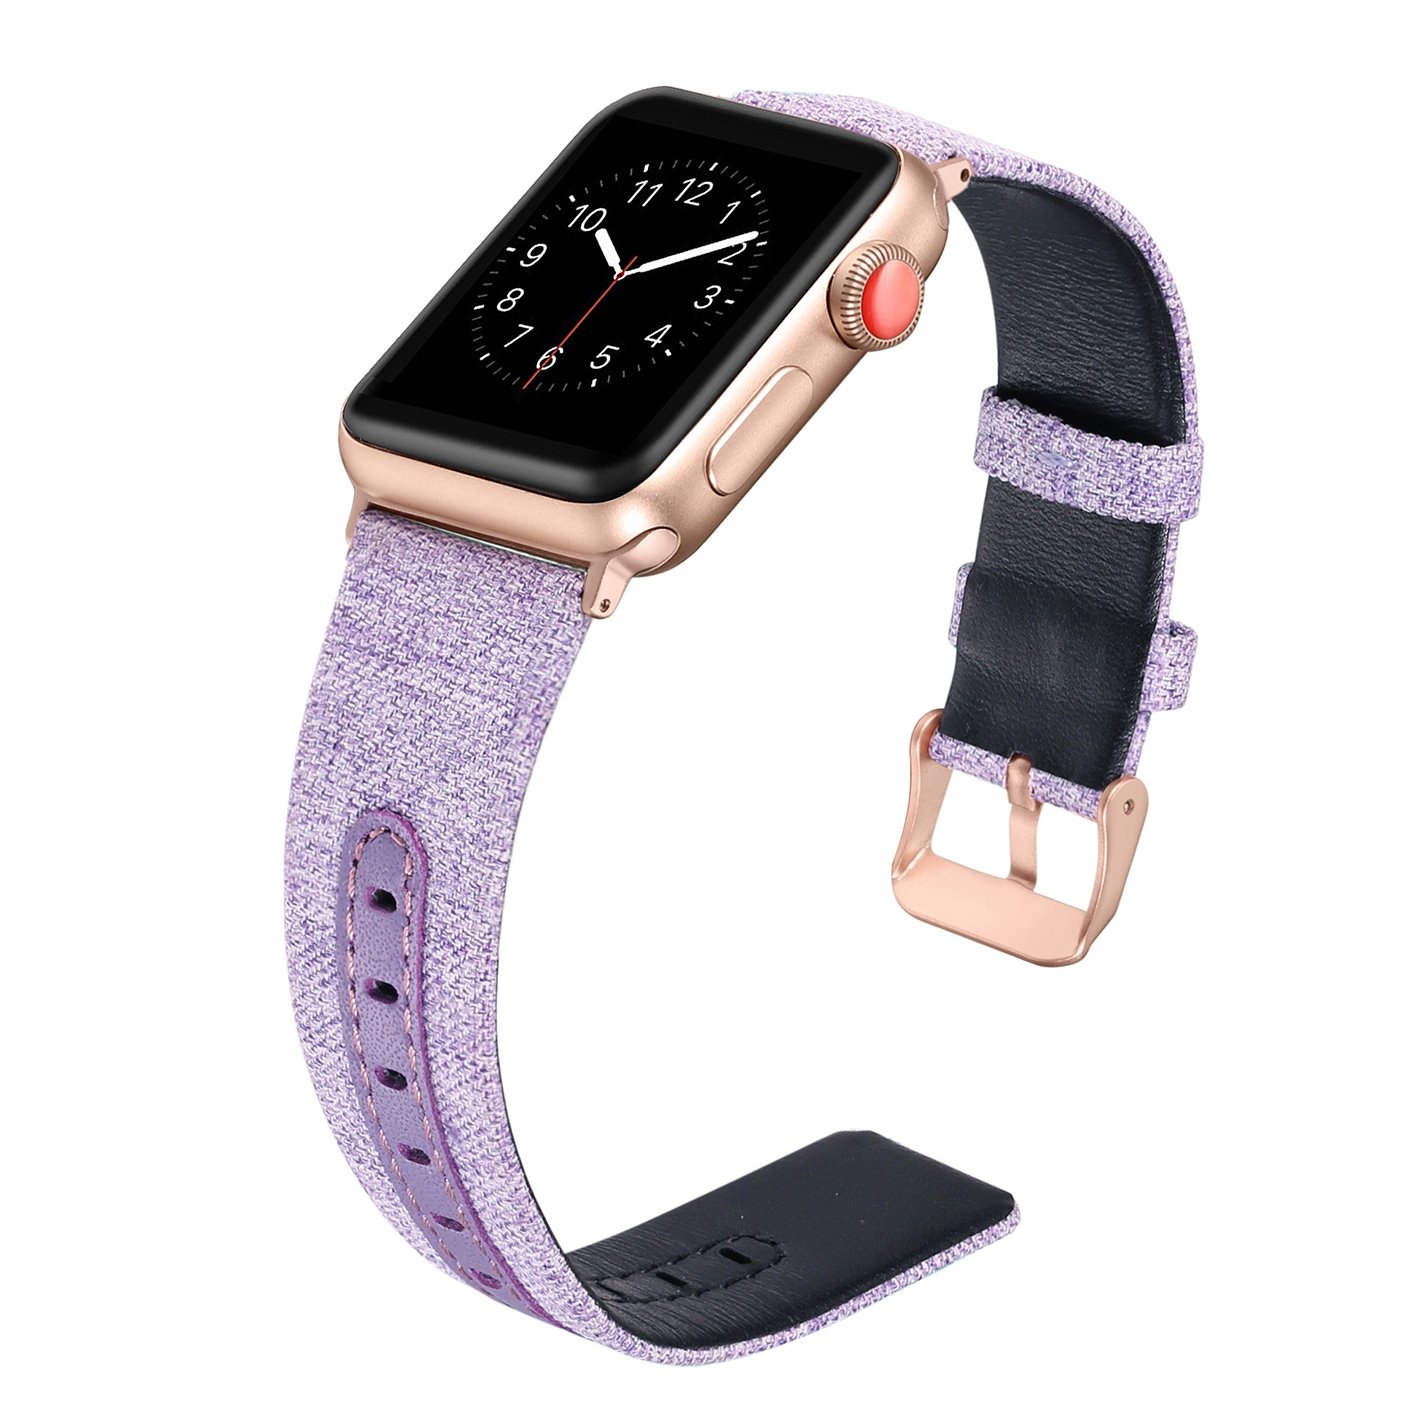 Secbolt for Apple Watch Band 38mm for Women, Canvas Fabric Bands with Genuine Leather Strap Replacement for iWatch Apple Watch Nike+, Series 3, Series 2, Series 1, Sport, Edition(Lavender, 38mm)